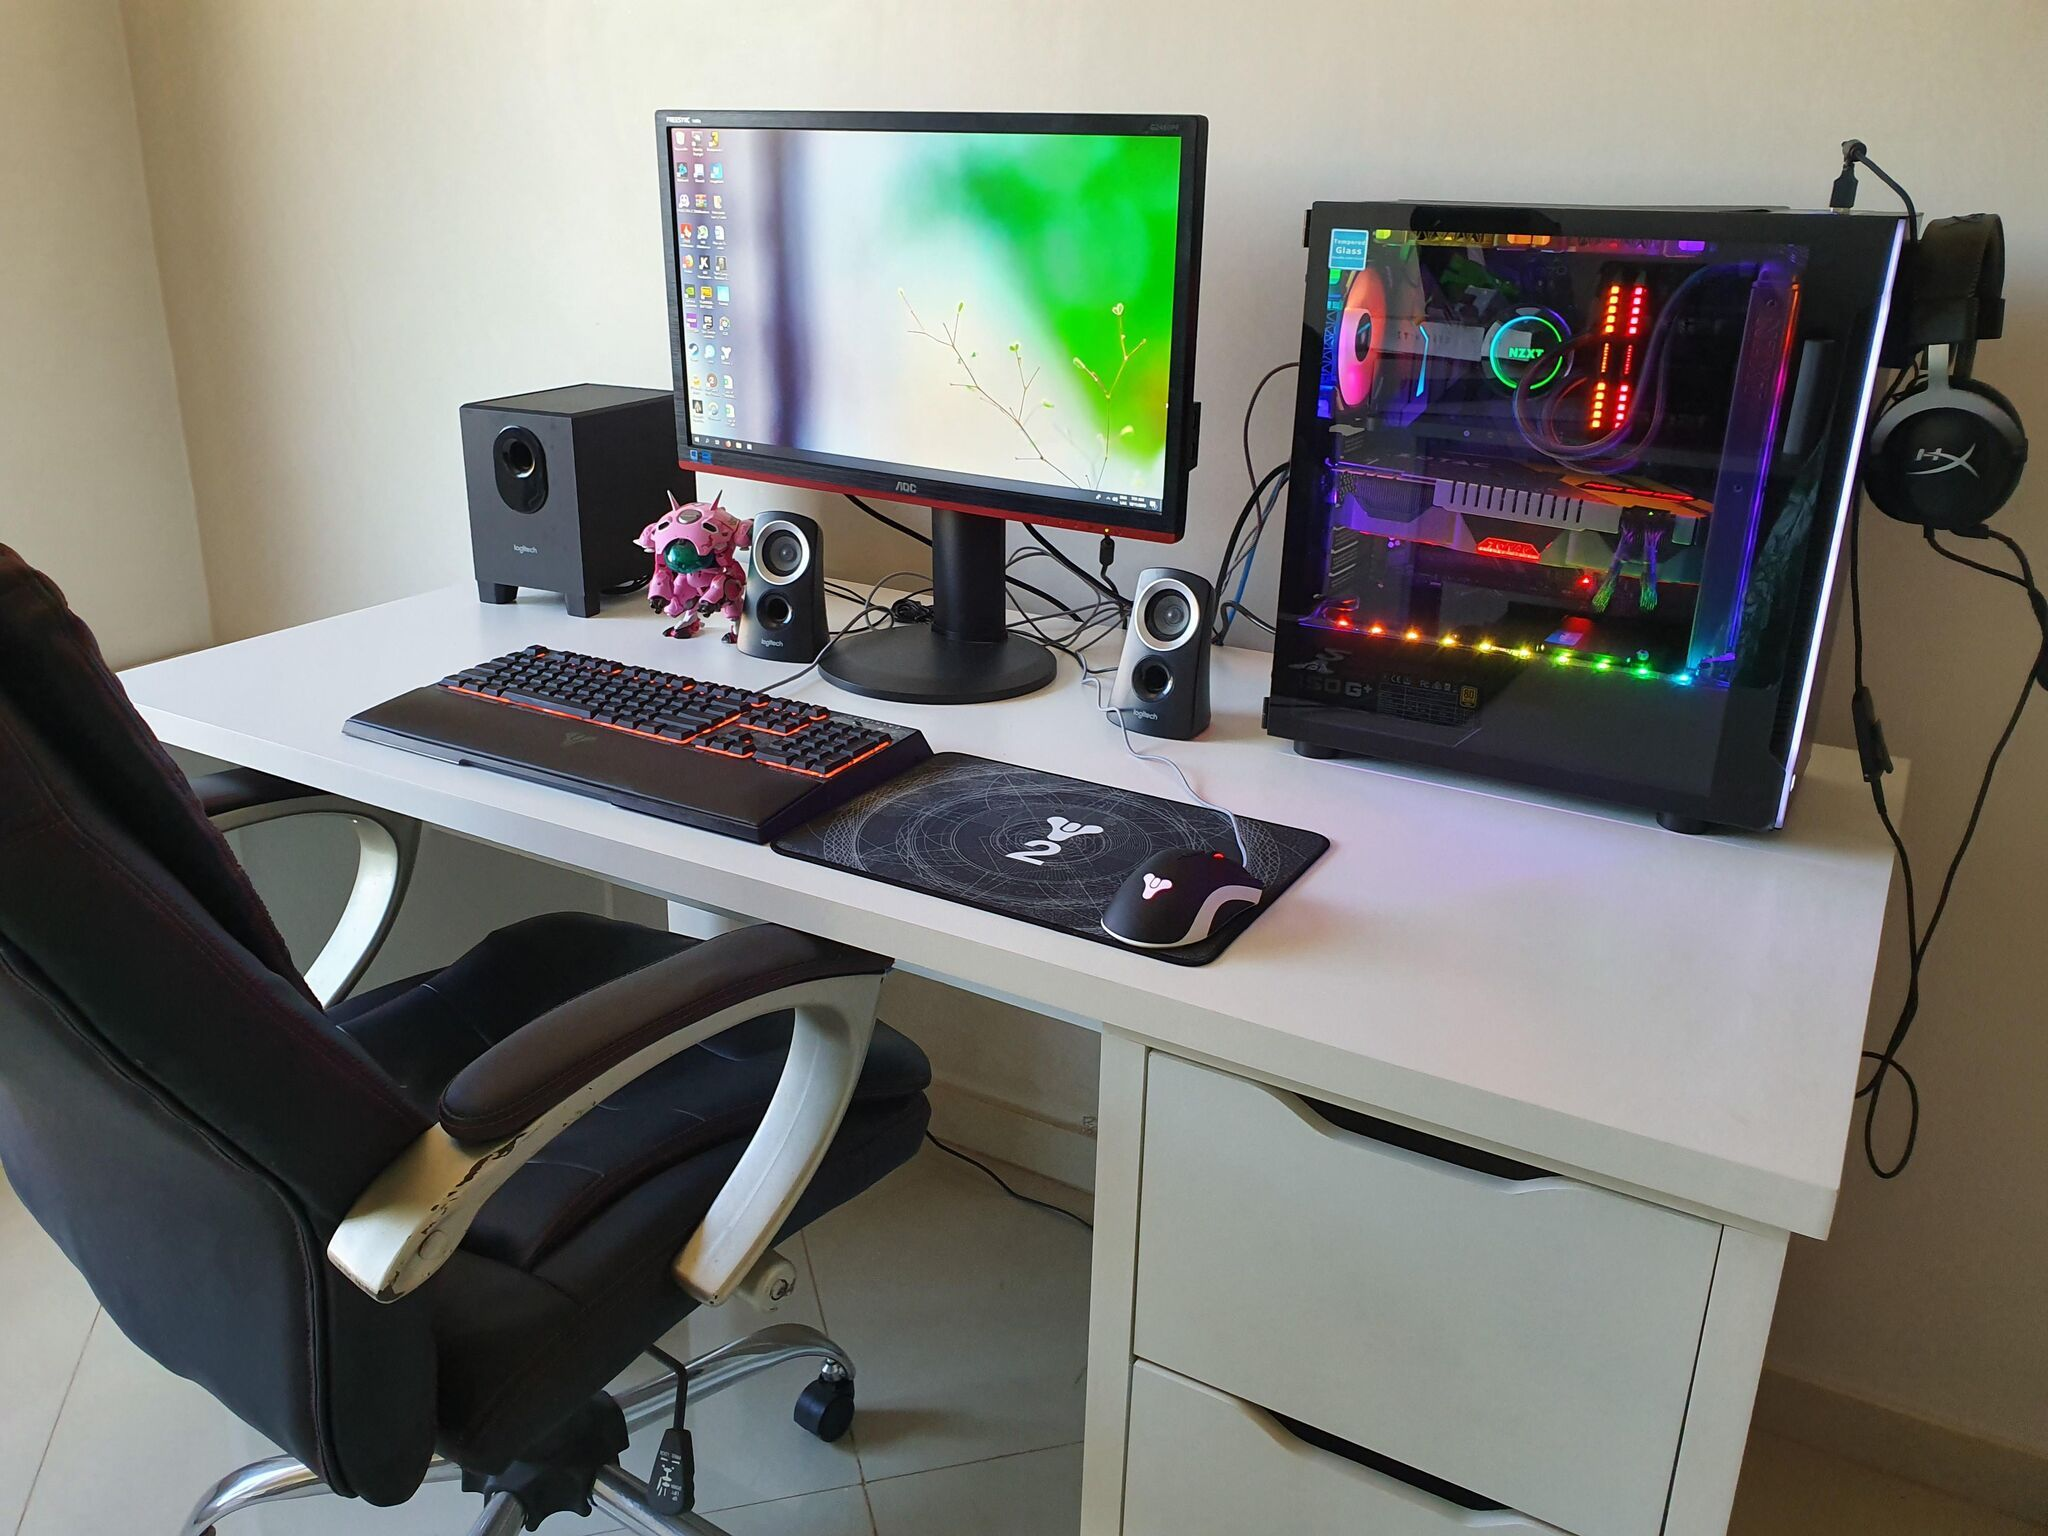 Needs some cable management.